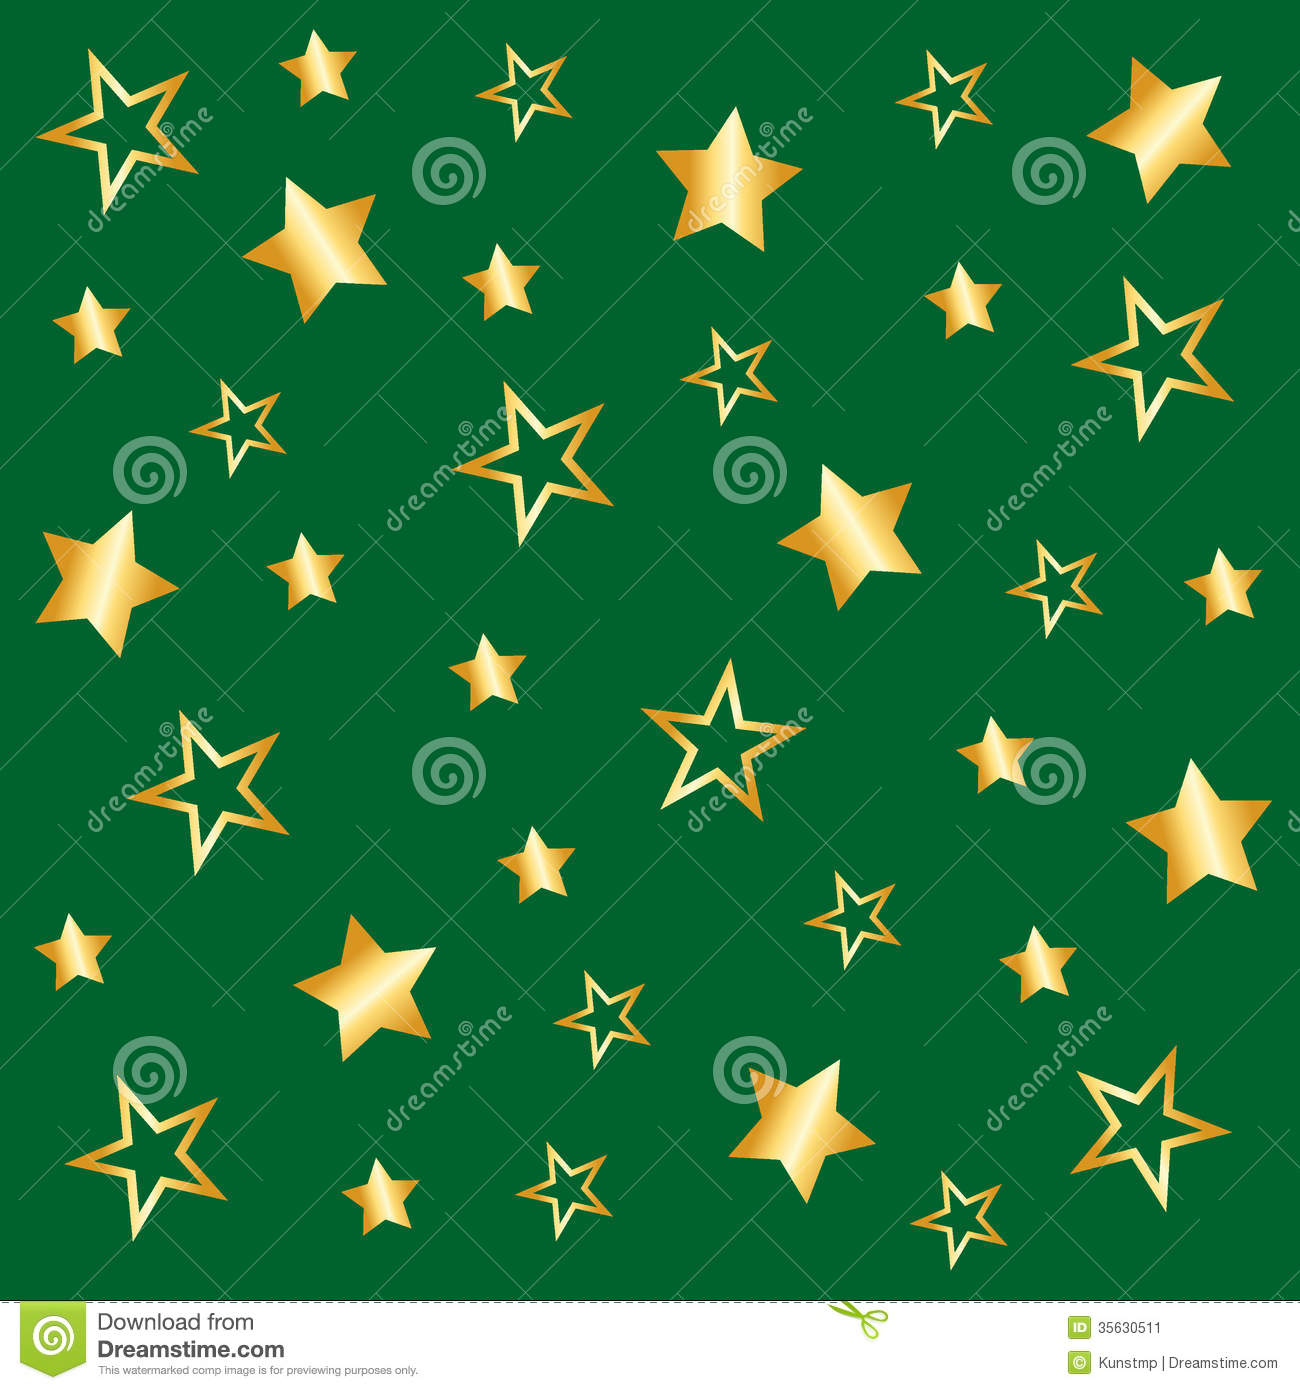 Background With Star Pattern In Green Stock Image - Image: 35630511